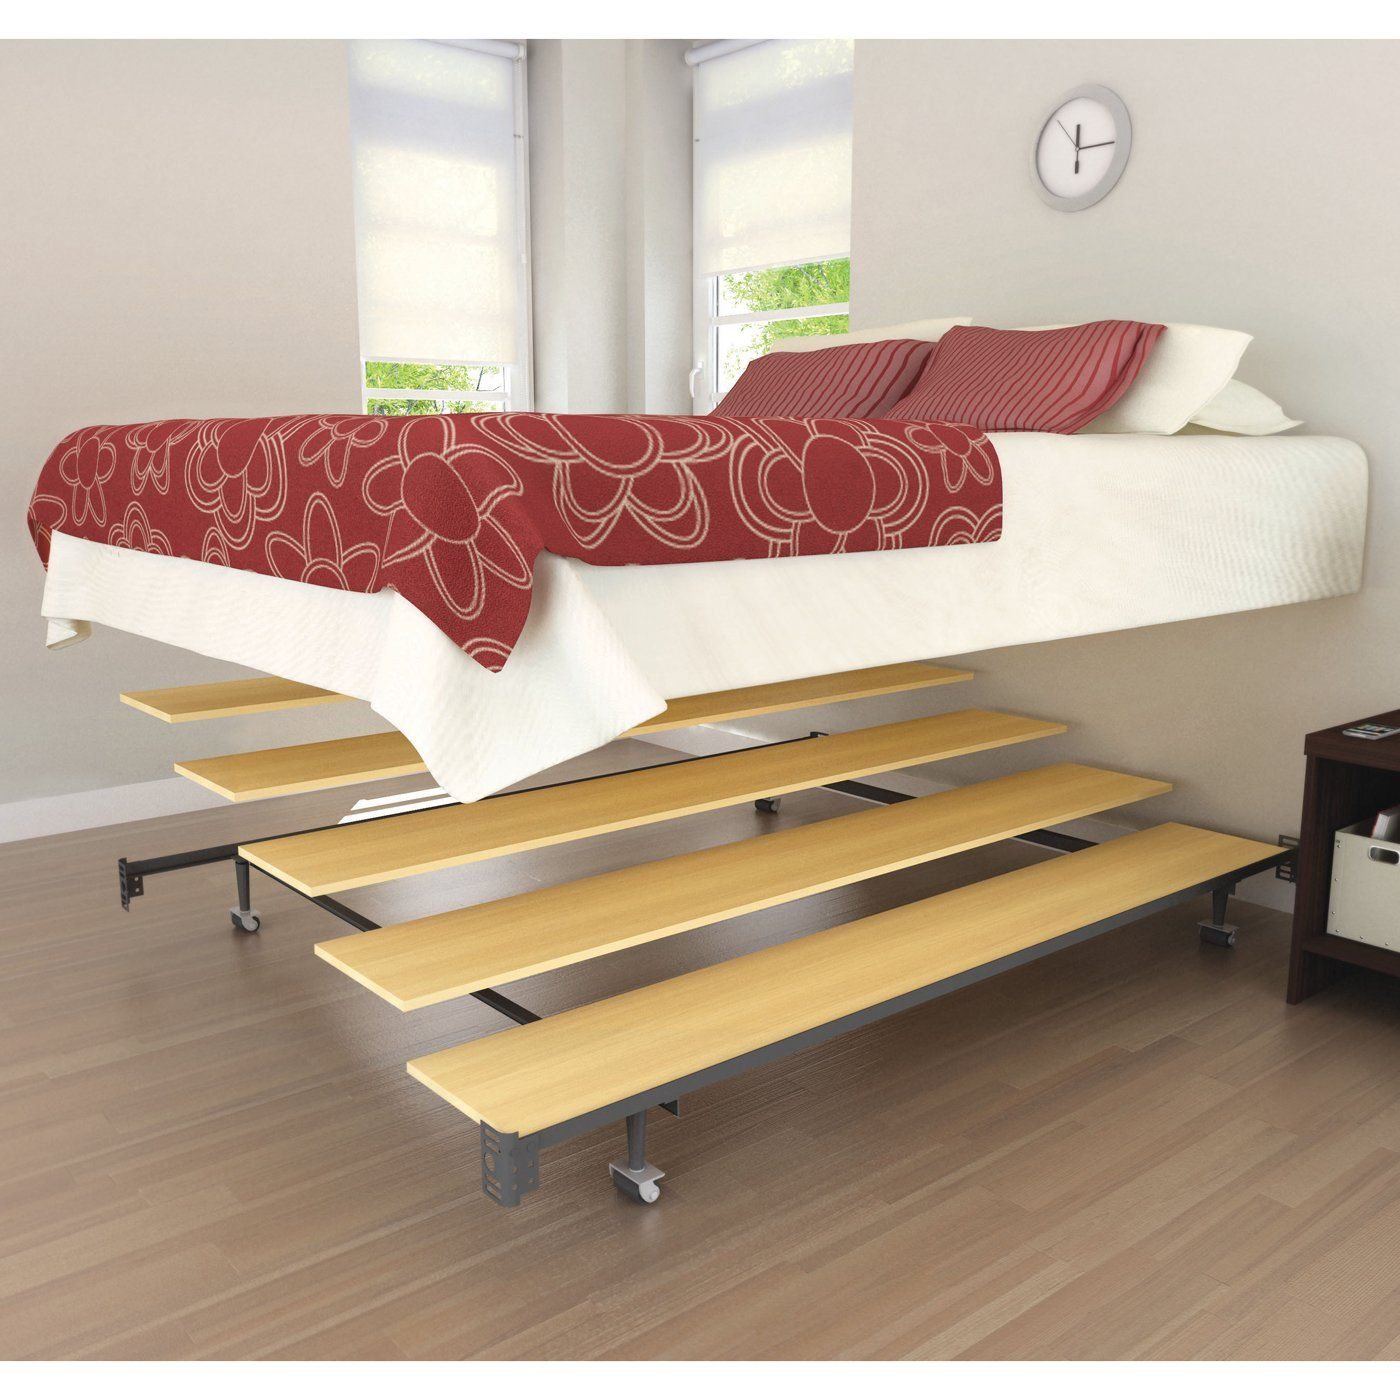 Cool Amazing Queen Bed And Mattress Set 54 In Small Home Decor Inspiration With